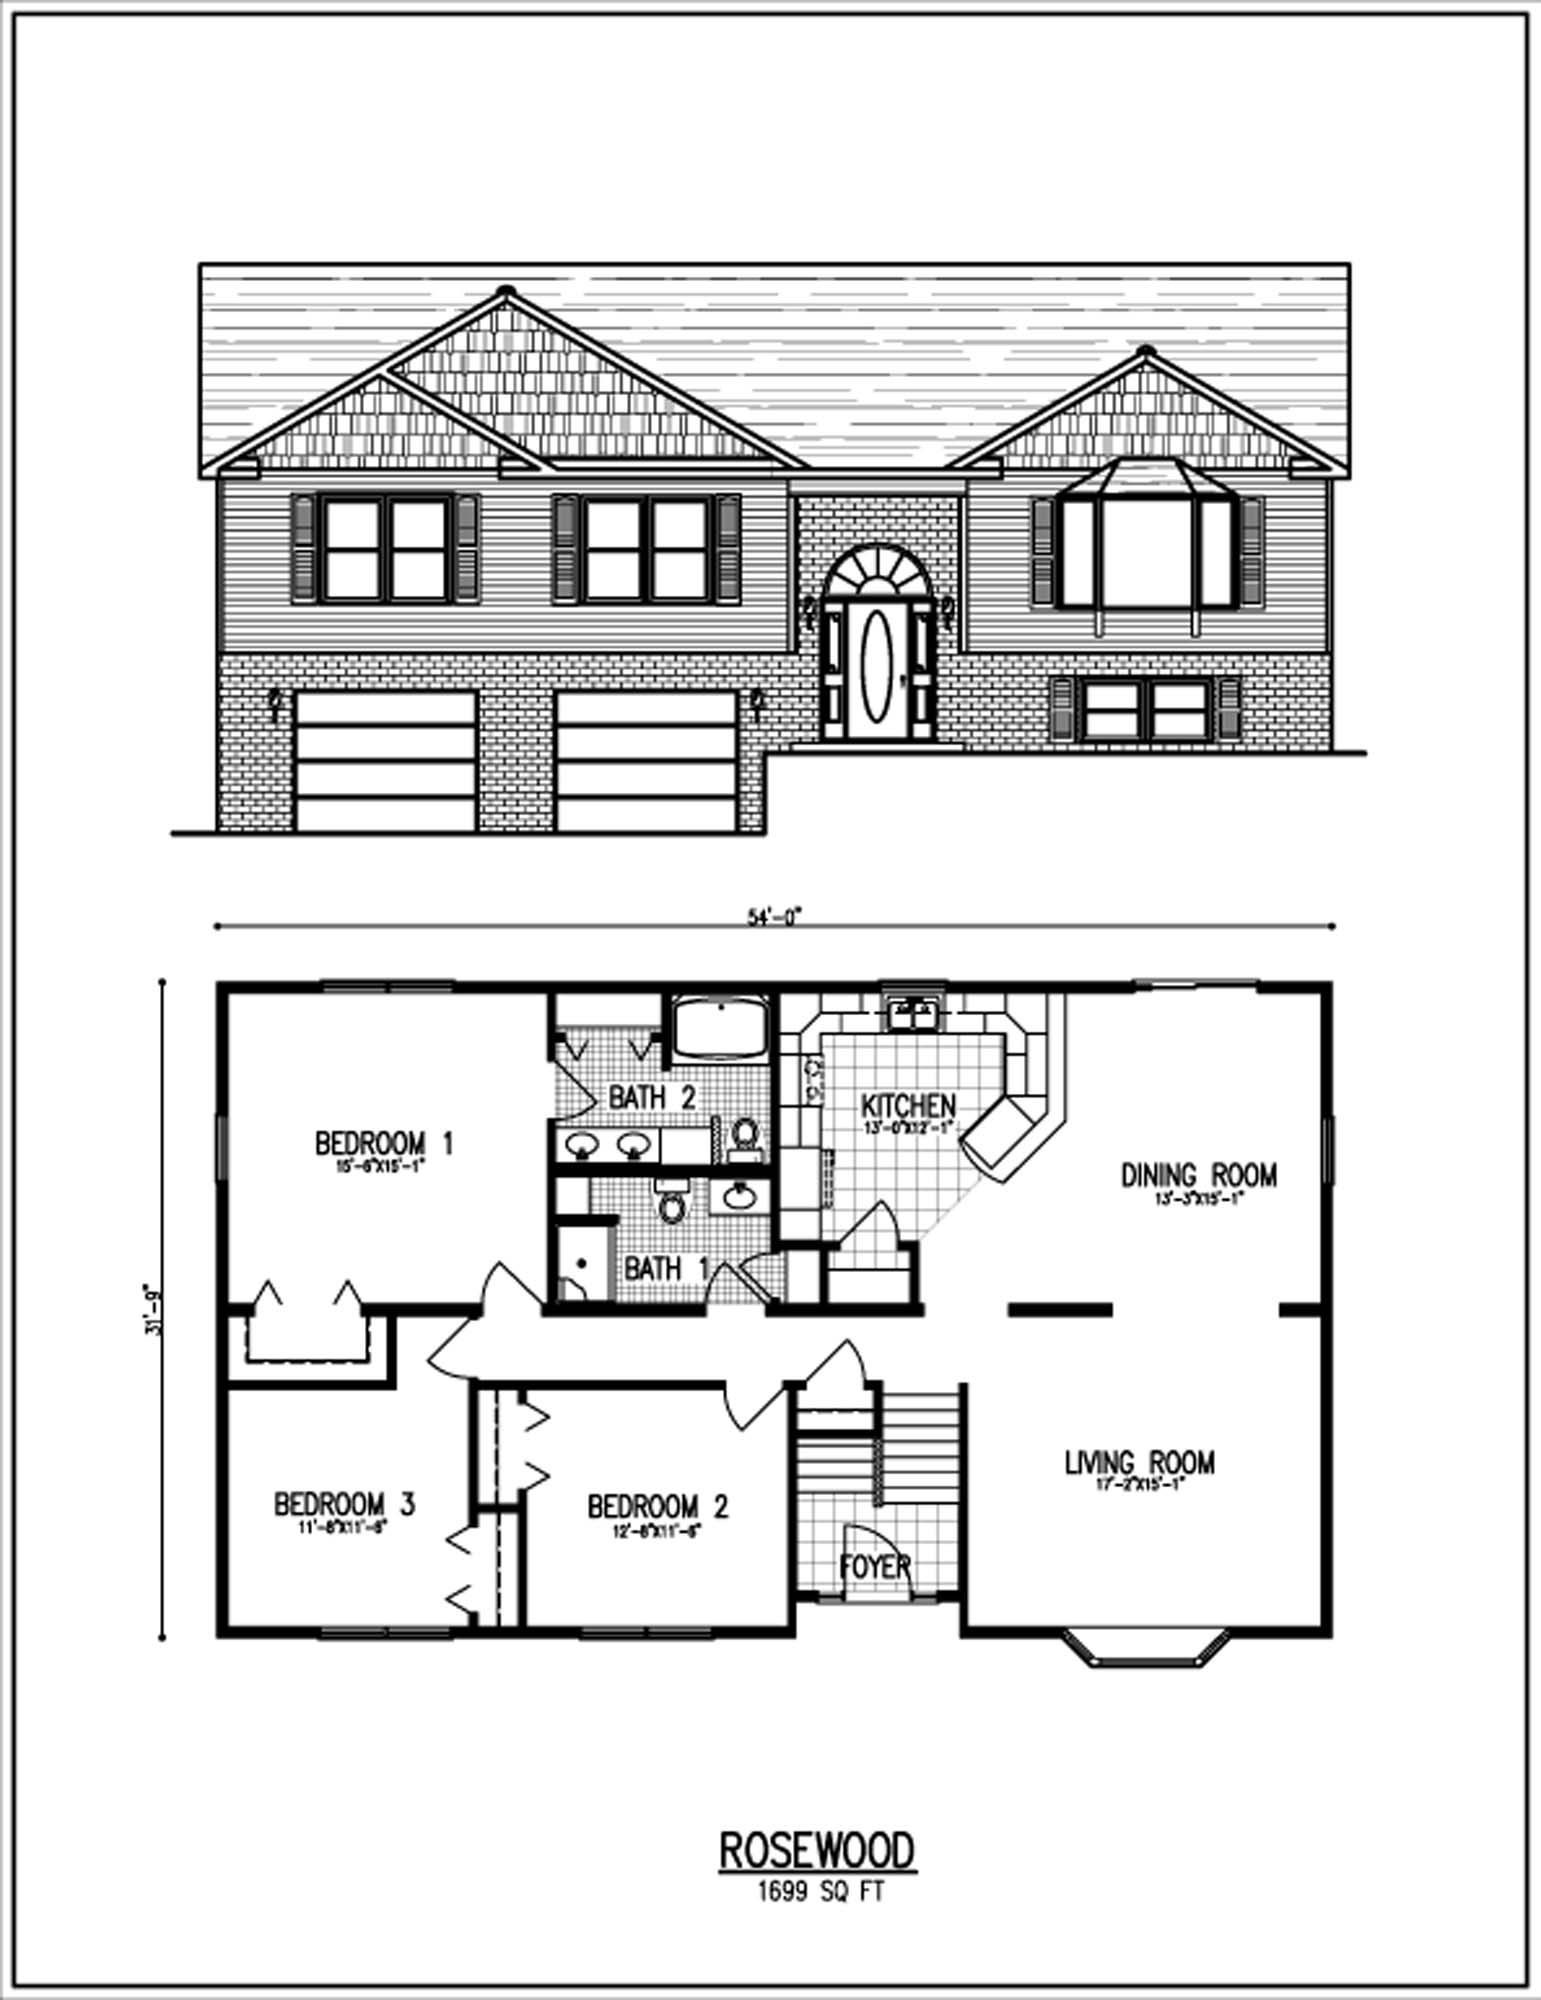 Raised Ranch Home Plans Designs Raised Free Printable Images